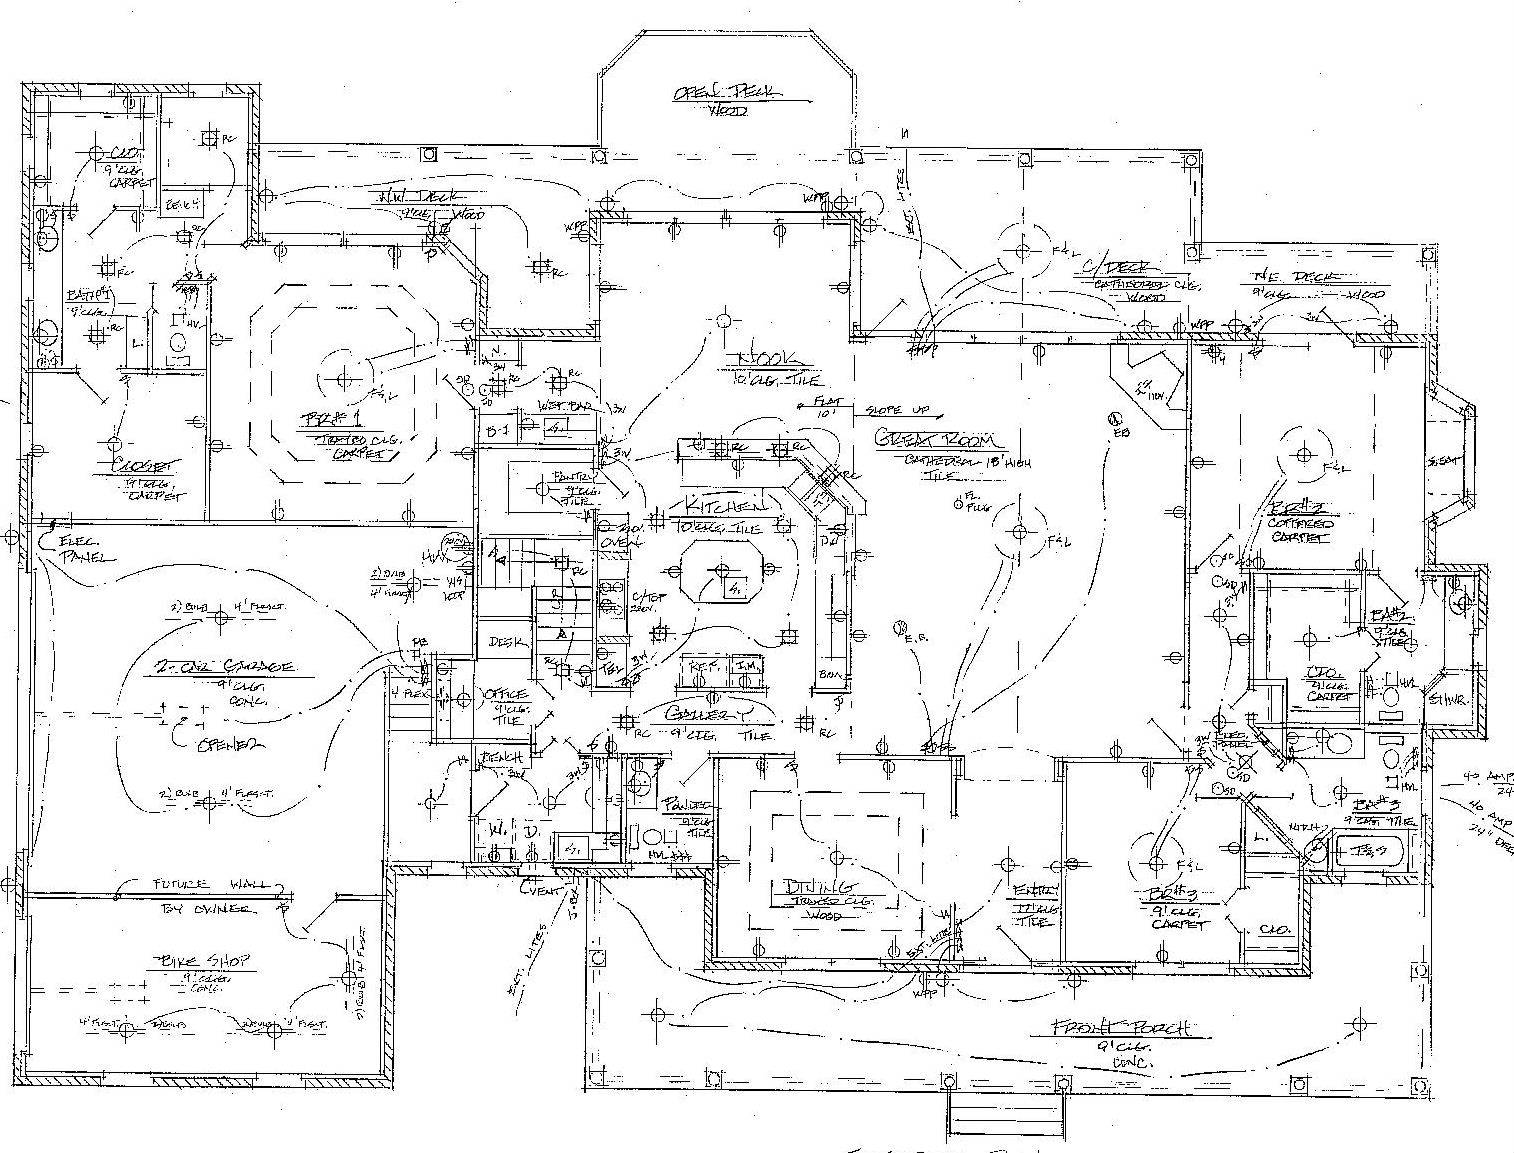 House Electrical Wiring Floor Plan Besides Restaurant